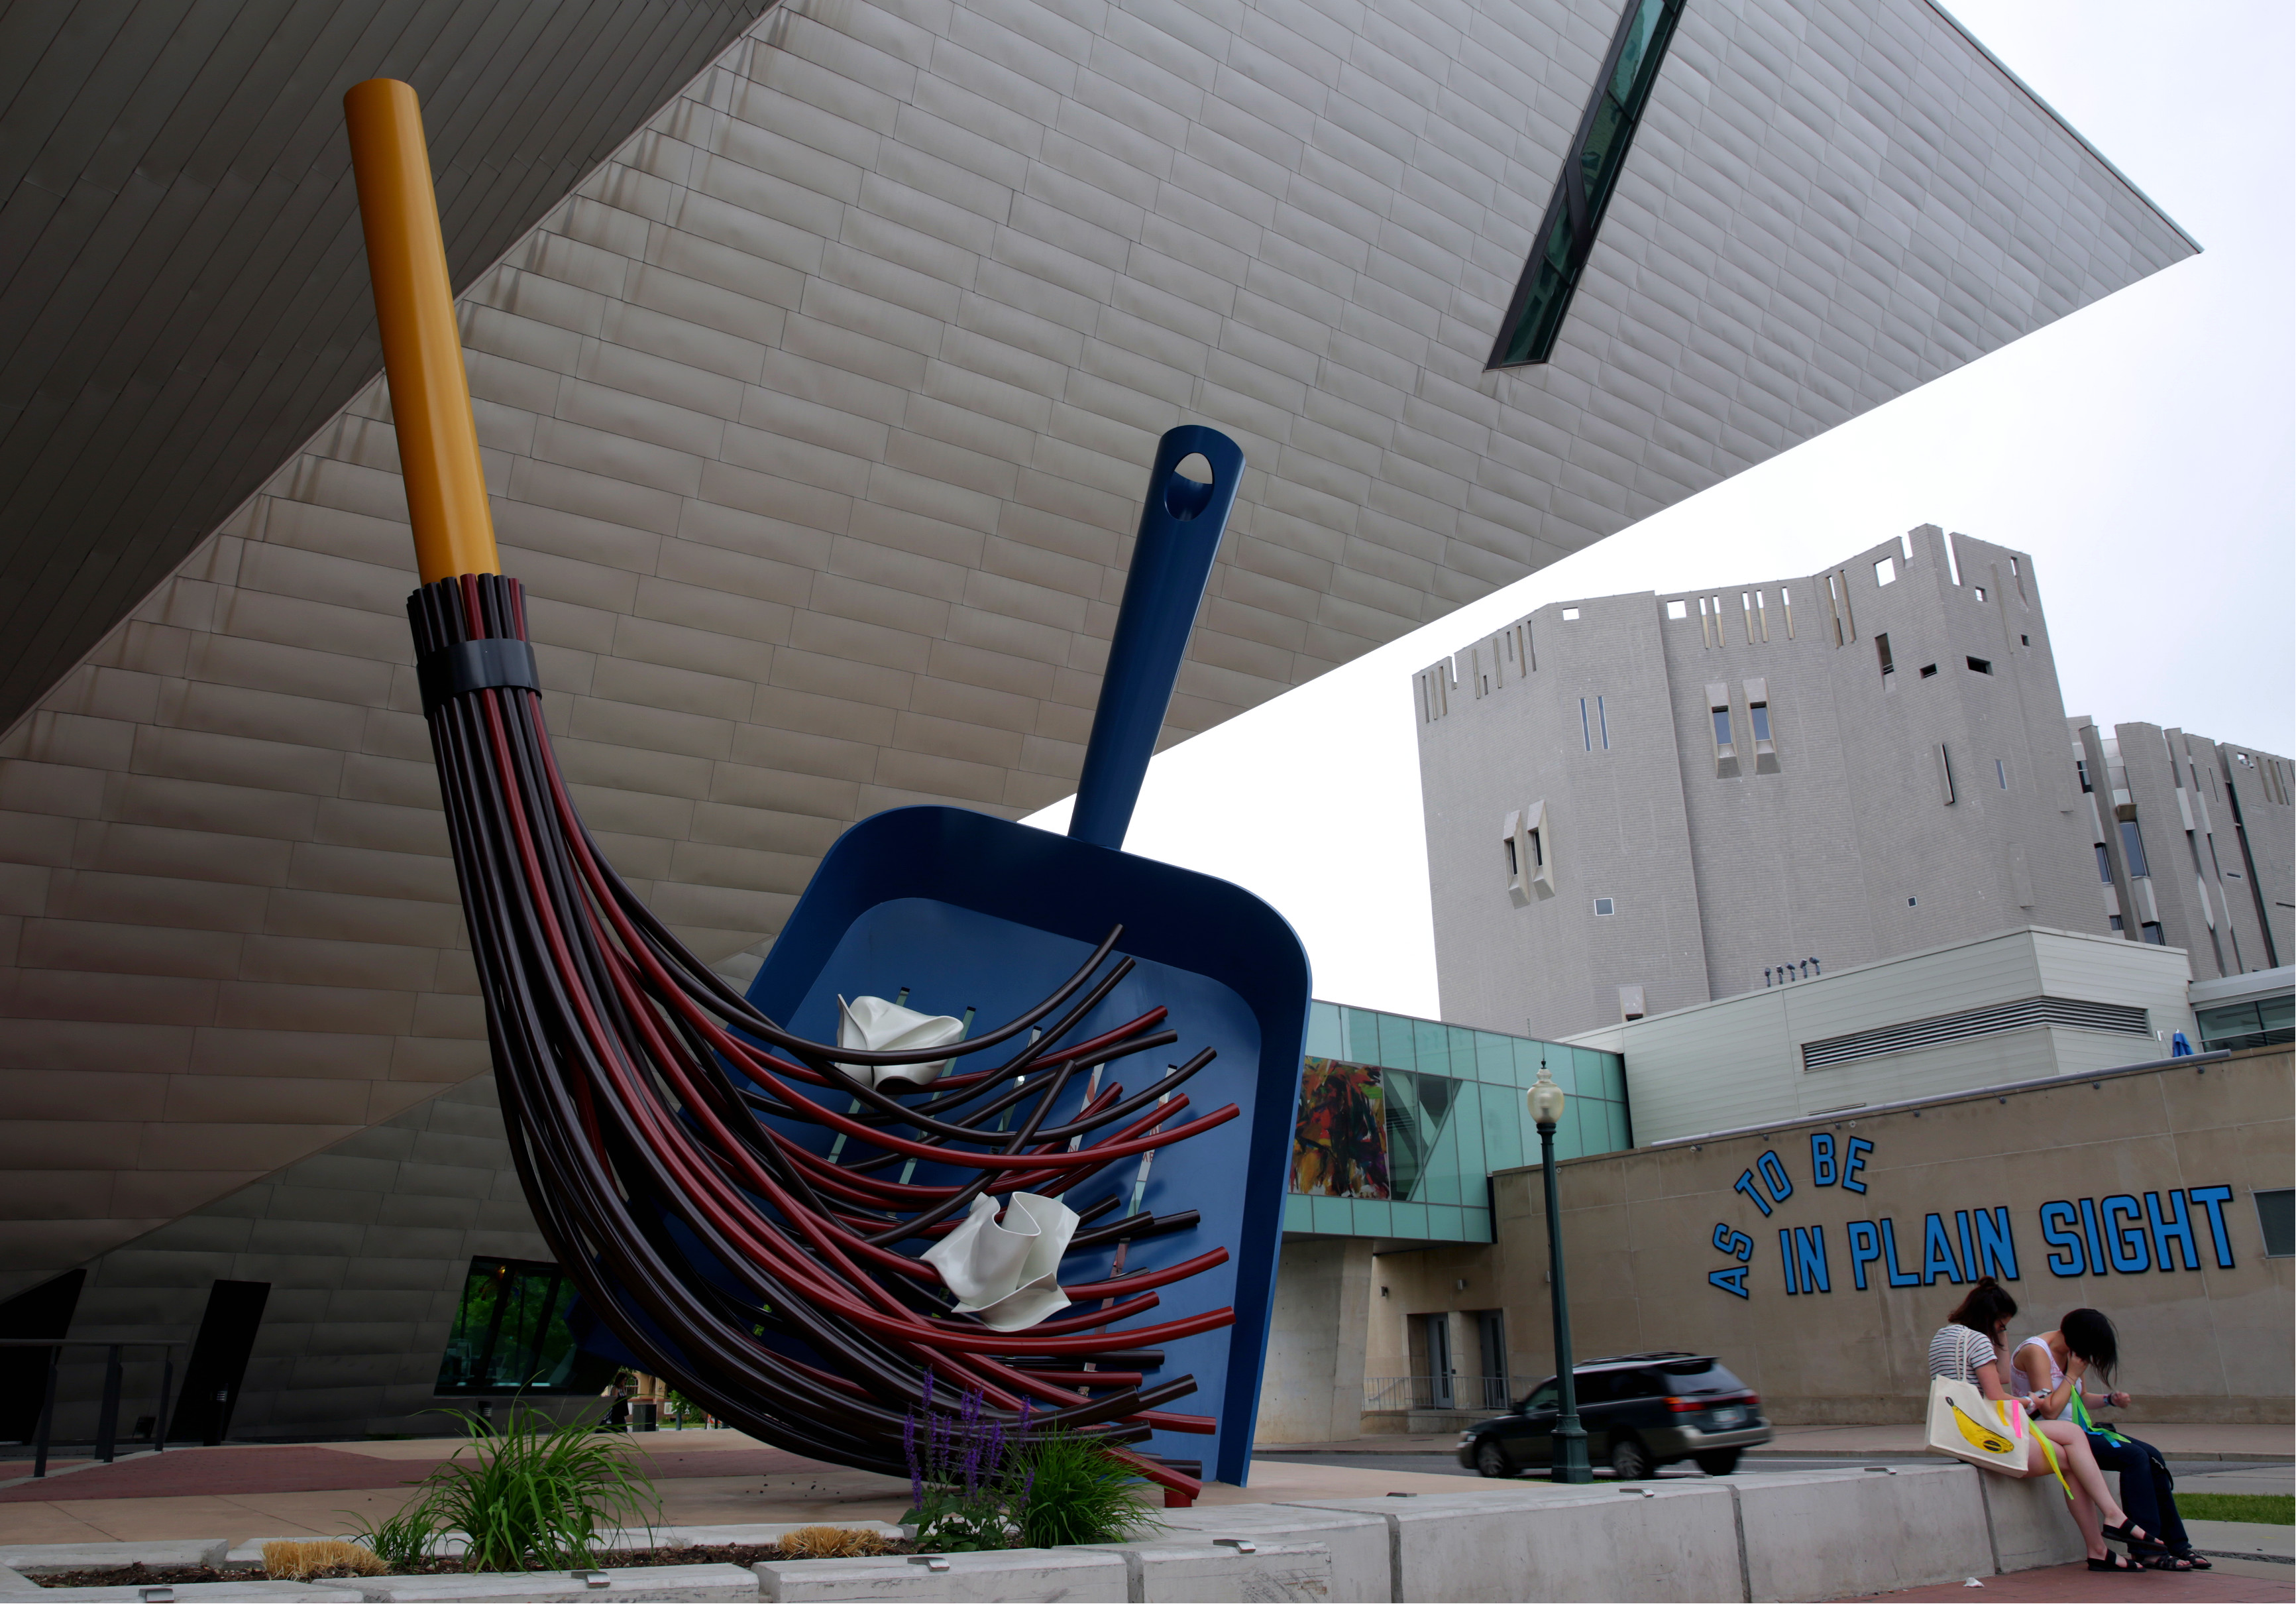 """<p><span style=""""color: rgb(64, 69, 64); background-color: rgb(255, 255, 255);"""">The """"Big Sweep""""</span> sits outside theDenver Art Museum in theGolden Triangle neighborhood, which was certified as a creativedistrict by the state of Colorado in June 2016.</p>"""